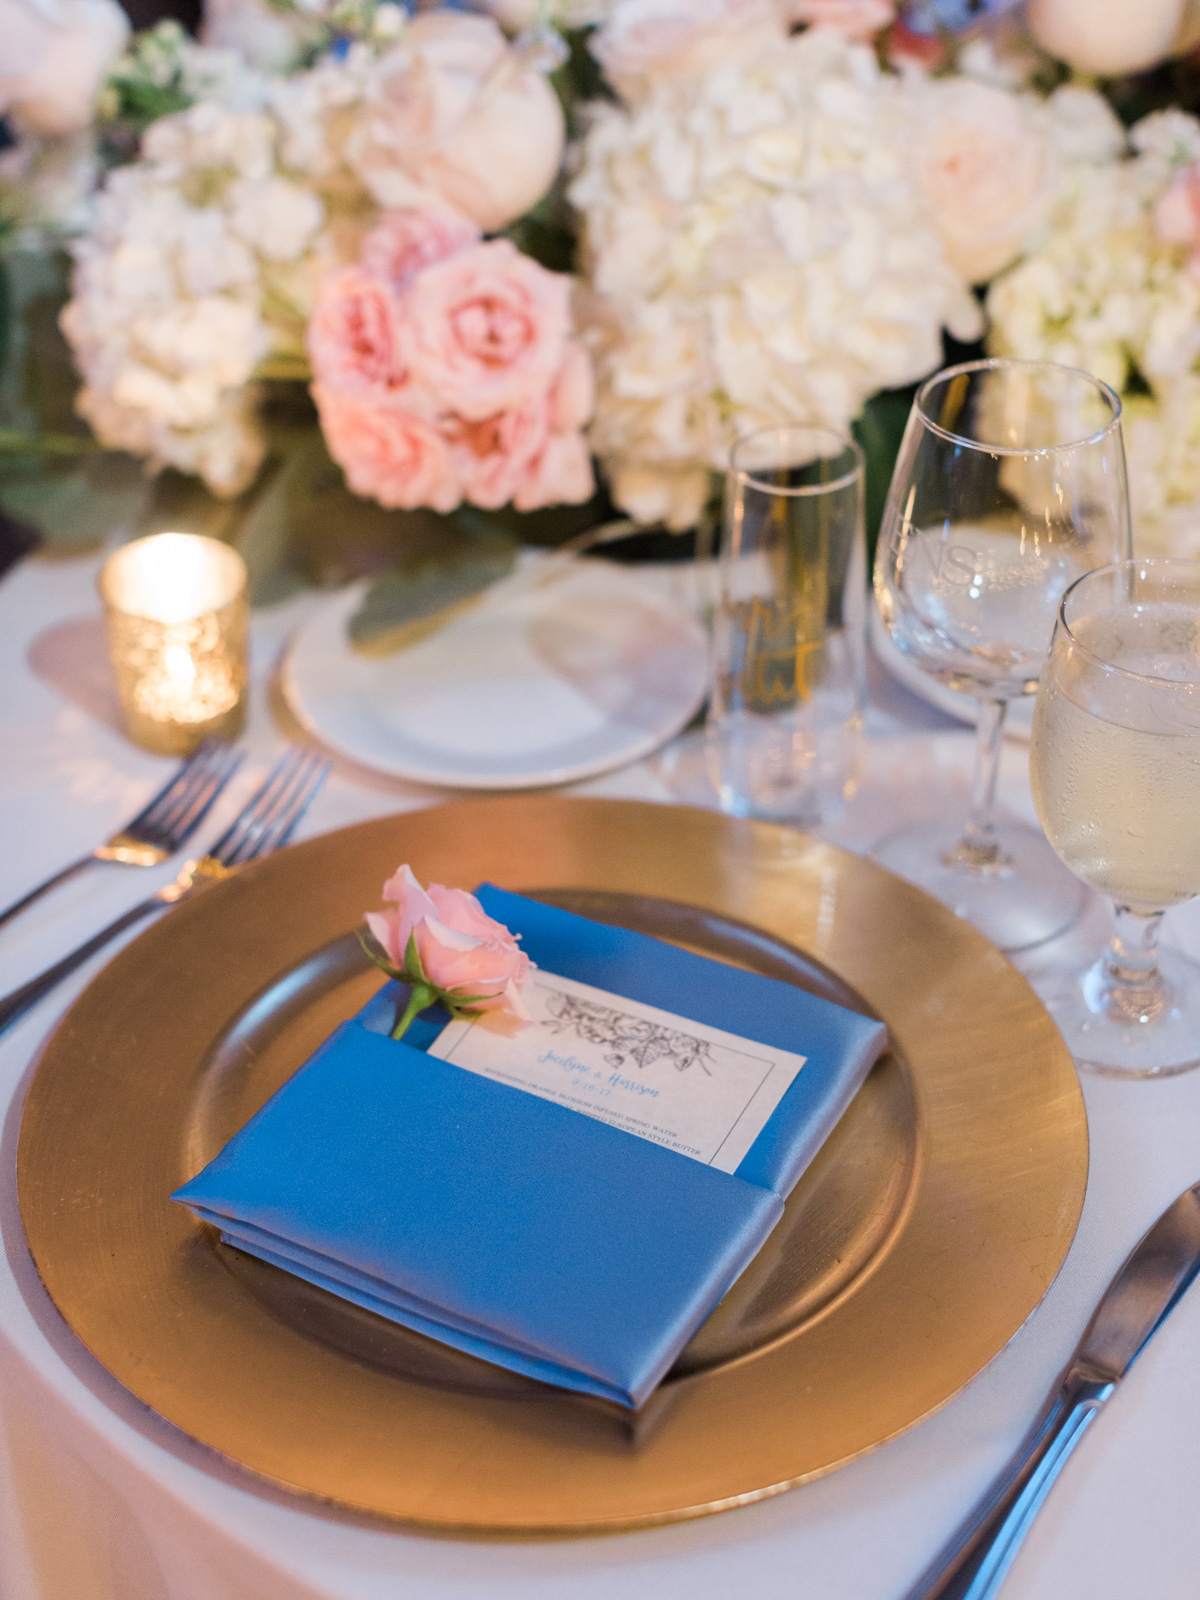 Blue and blush sweetheart table  Harrison & Jocelyne's gorgeous Temecula wedding day at Wiens Family Cellars captured by Temecula wedding photographers Betsy & John